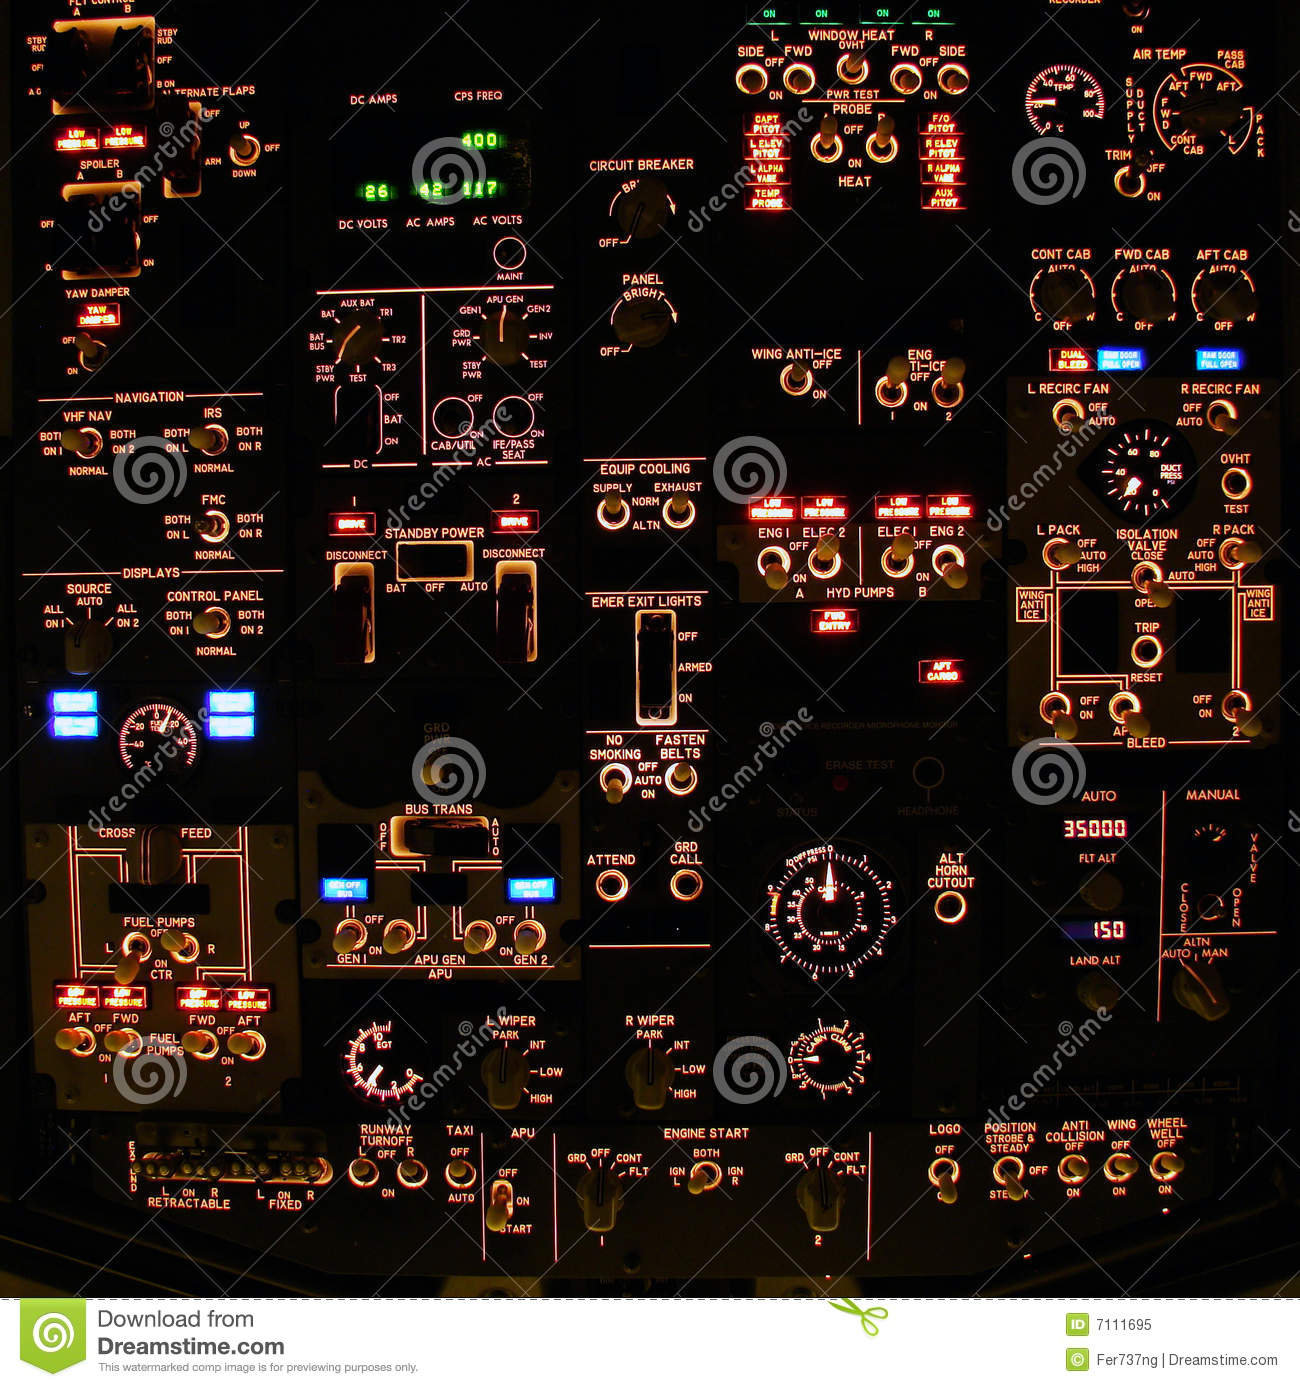 heat map generator with Royalty Free Stock Photo Flight Deck Overhead Panel Modern Airliner Image7111695 on Solar10 likewise Suppliers And Partners together with Guide moreover Sankey Diagram Focus Fusion Energy further Heat Map In Tableau.